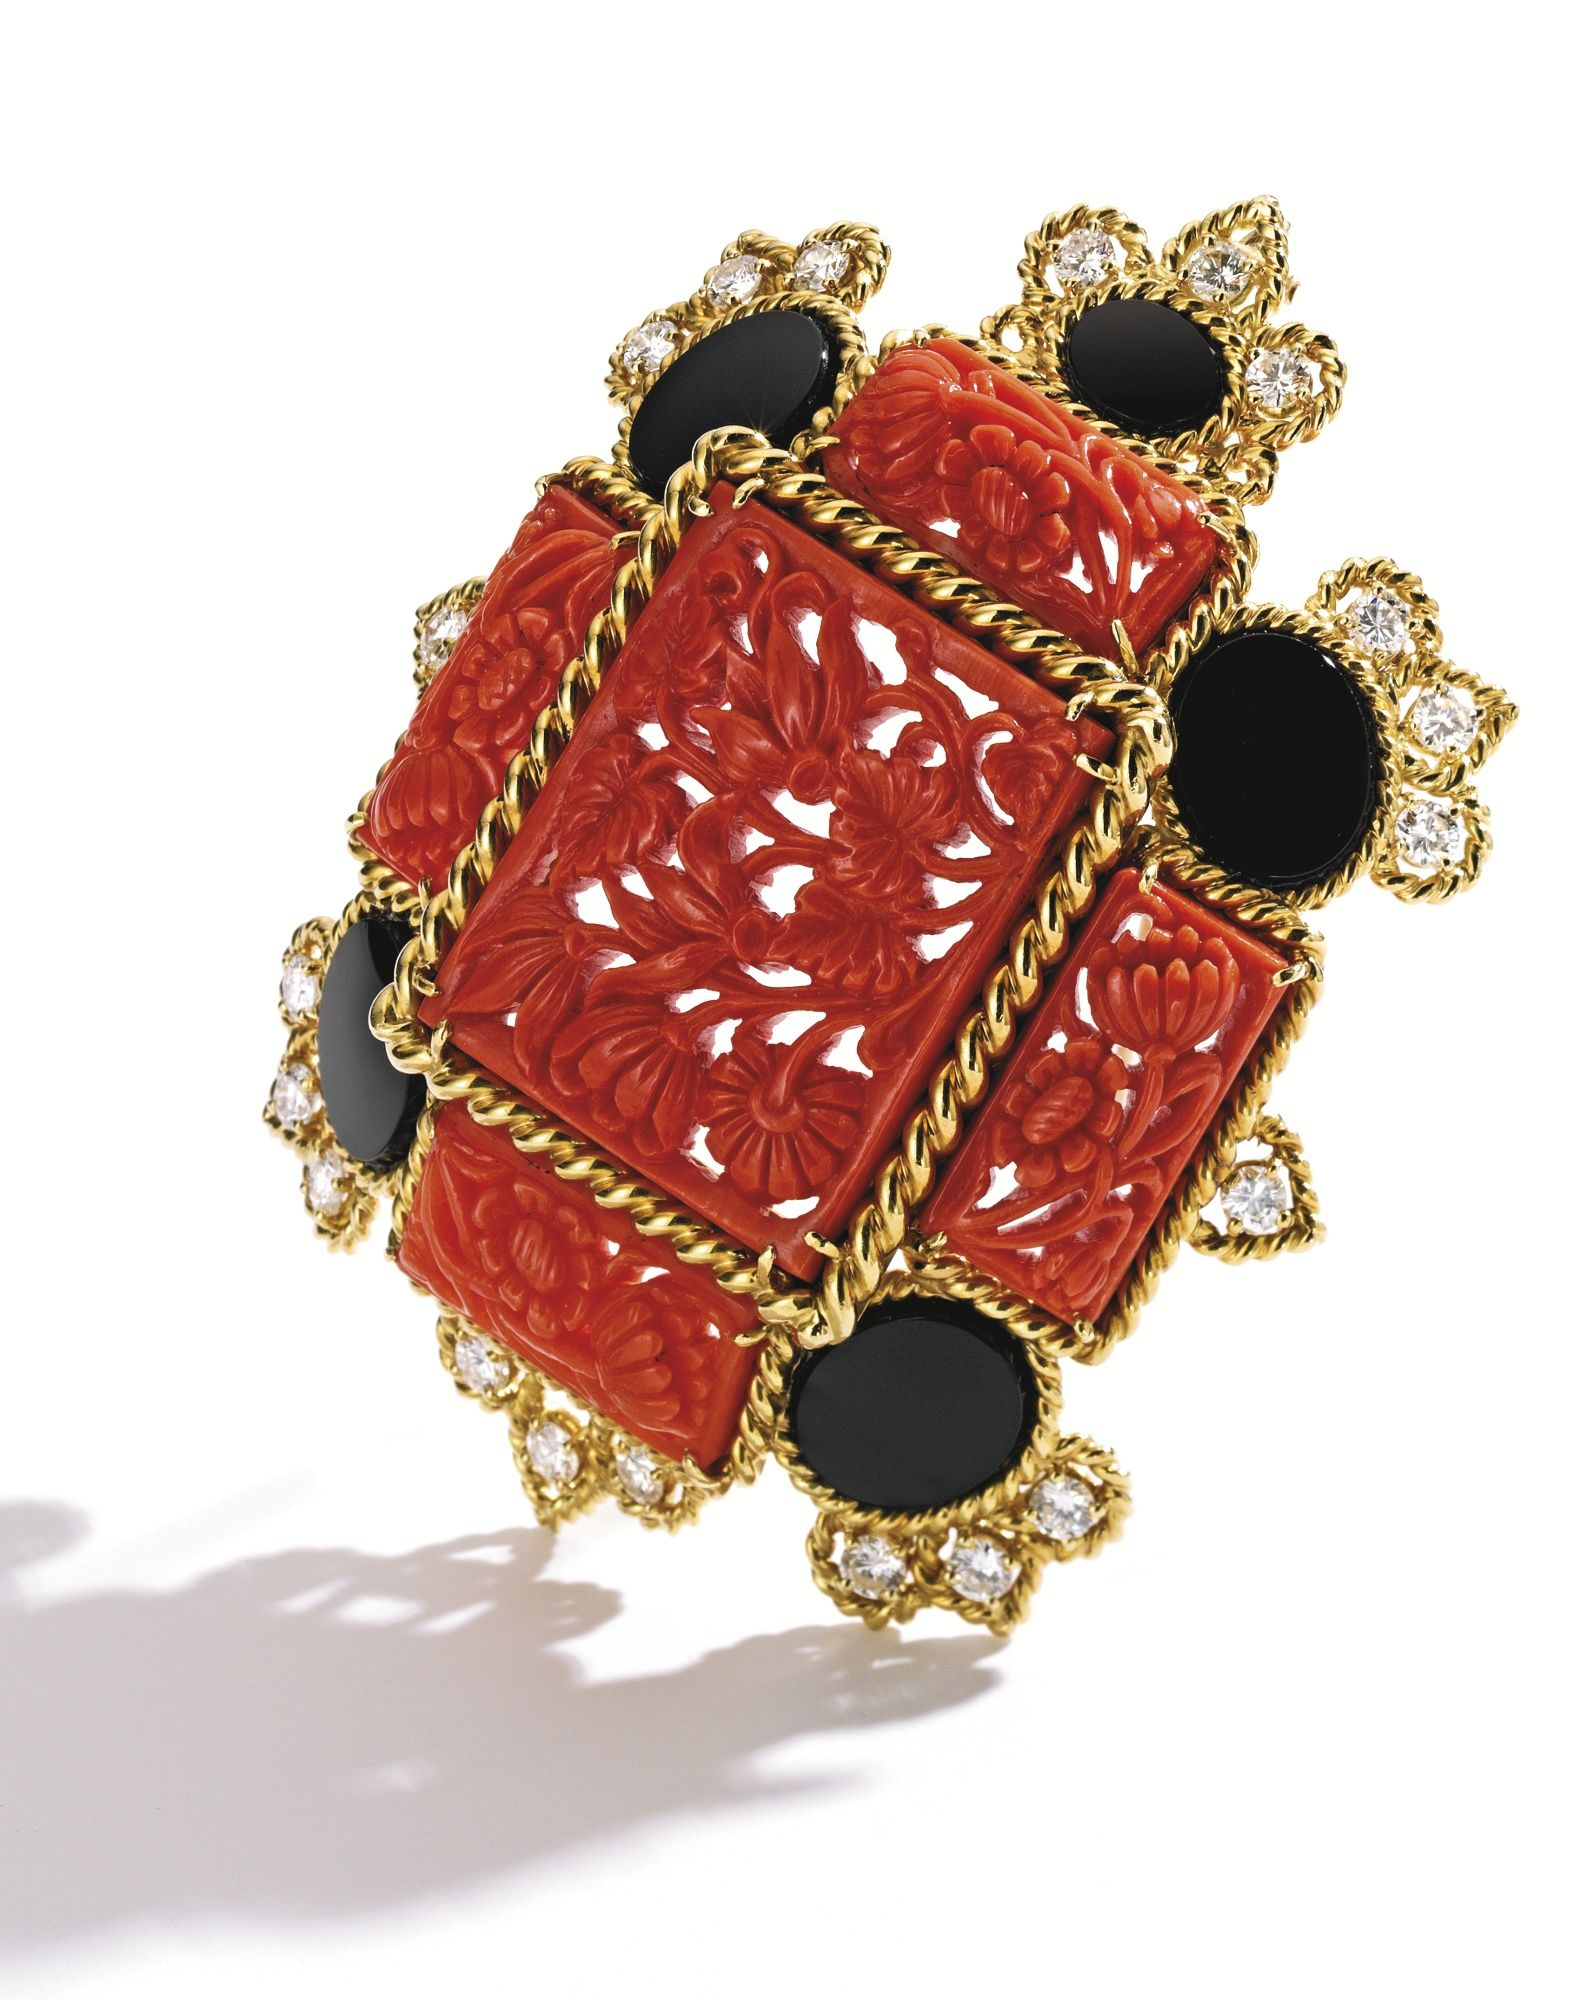 Suite of 18 Karat Gold, Coral, Onyx and Diamond Jewelry, Van Cleef & Arpels Comprising a necklace composed of coral plaques carved with floral motifs, spaced by onyx rings, set with round diamonds weighing approximately 2.25 carats, length 28 inches, numbered NY43220; pendant detachable, with brooch fitting; together with a pair of earclips of similar design, set with round diamonds weighing approximately 2.10 carats, signed Van Cleef & Arpels, numbered N.Y. 43316; pendants detachable; the…